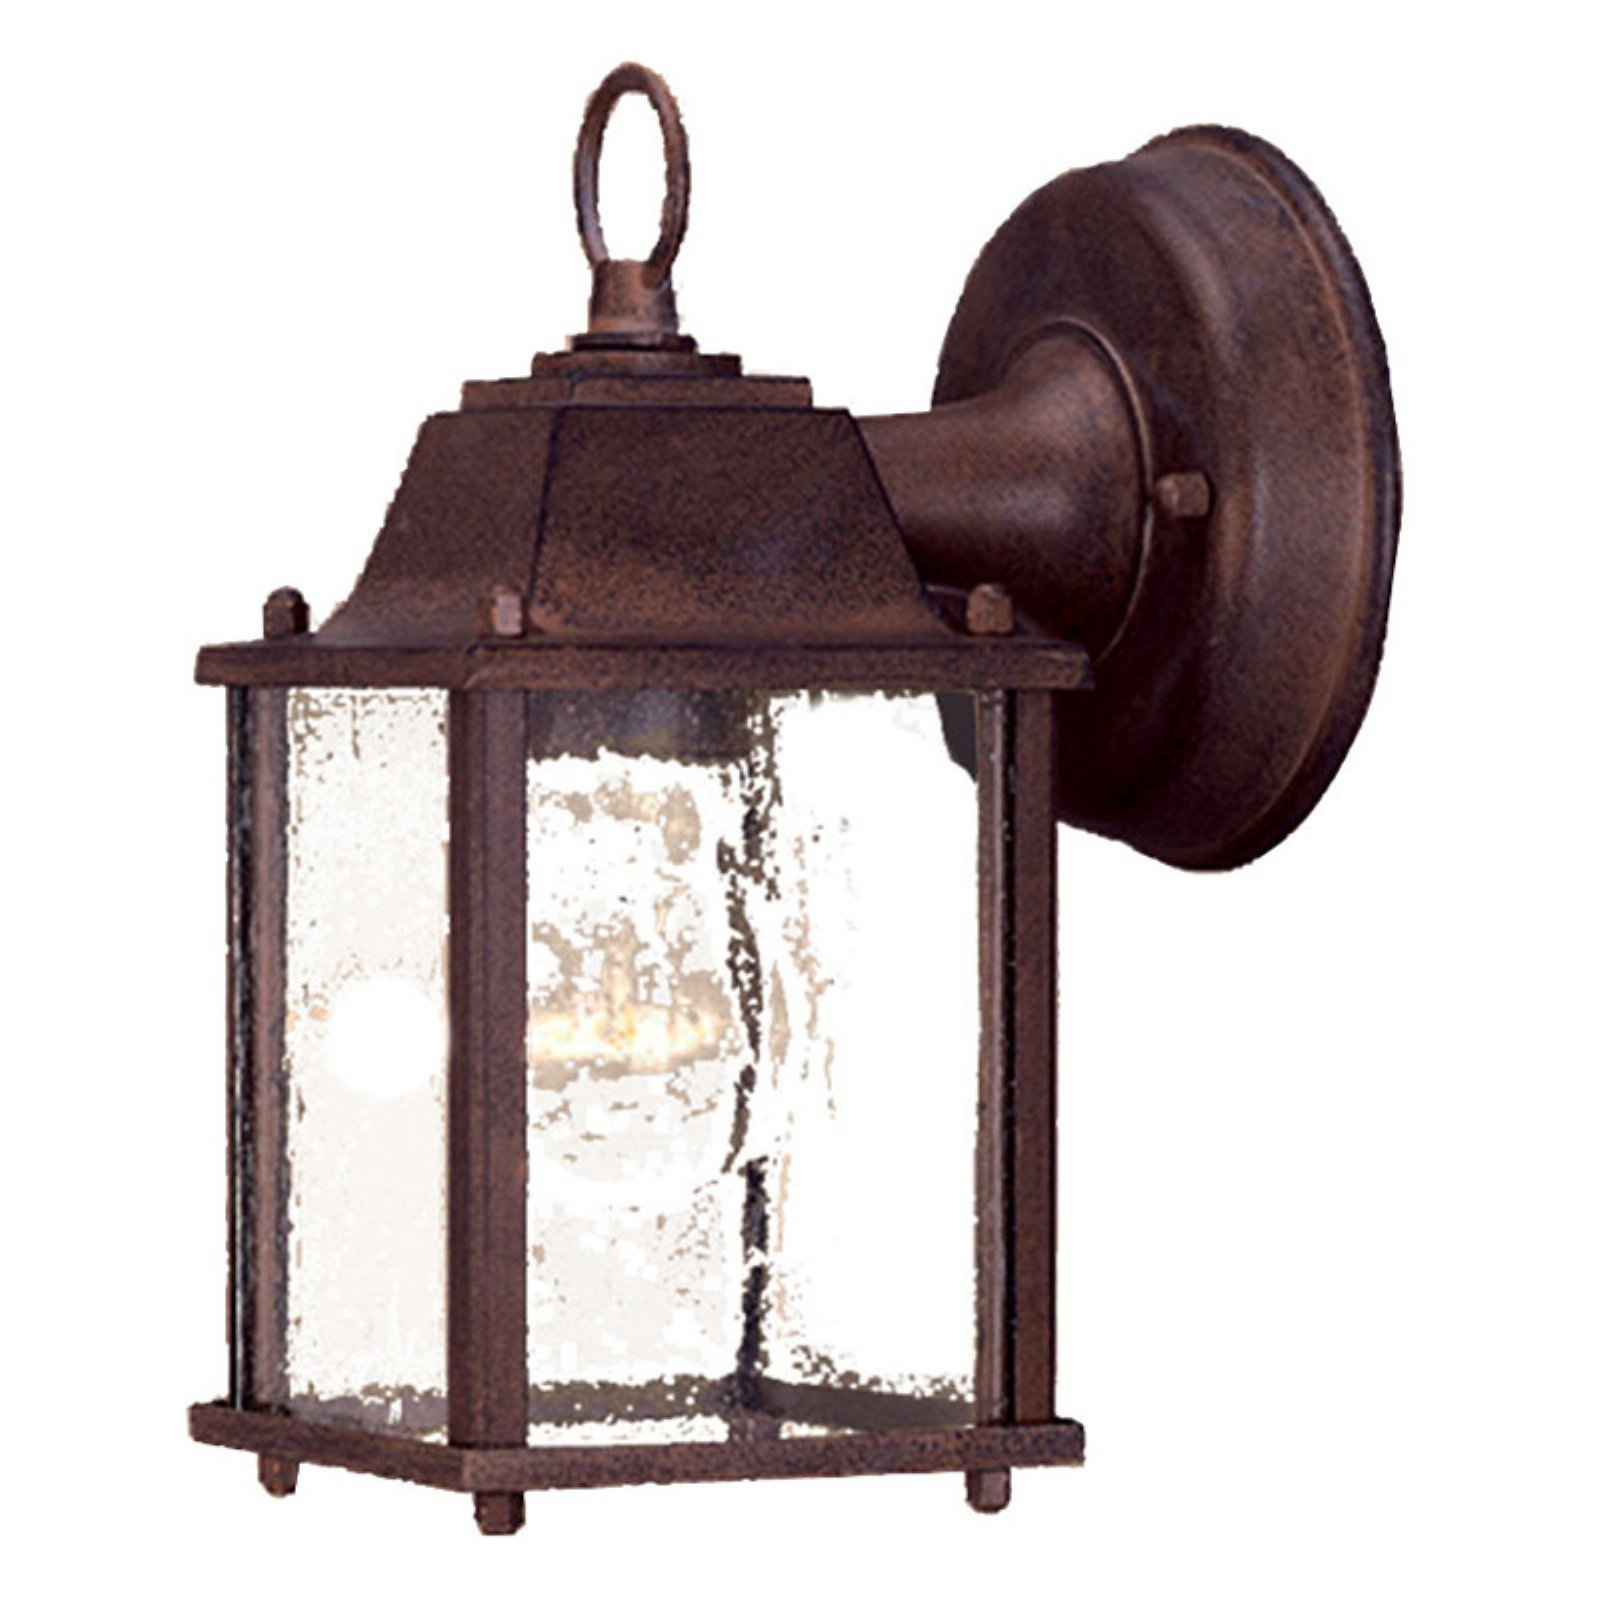 Acclaim Lighting  5001  Wall Sconces  Builder's Choice  Outdoor Lighting  Outdoor Wall Sconces  ;Burled Walnut / Clear Beveled Glass